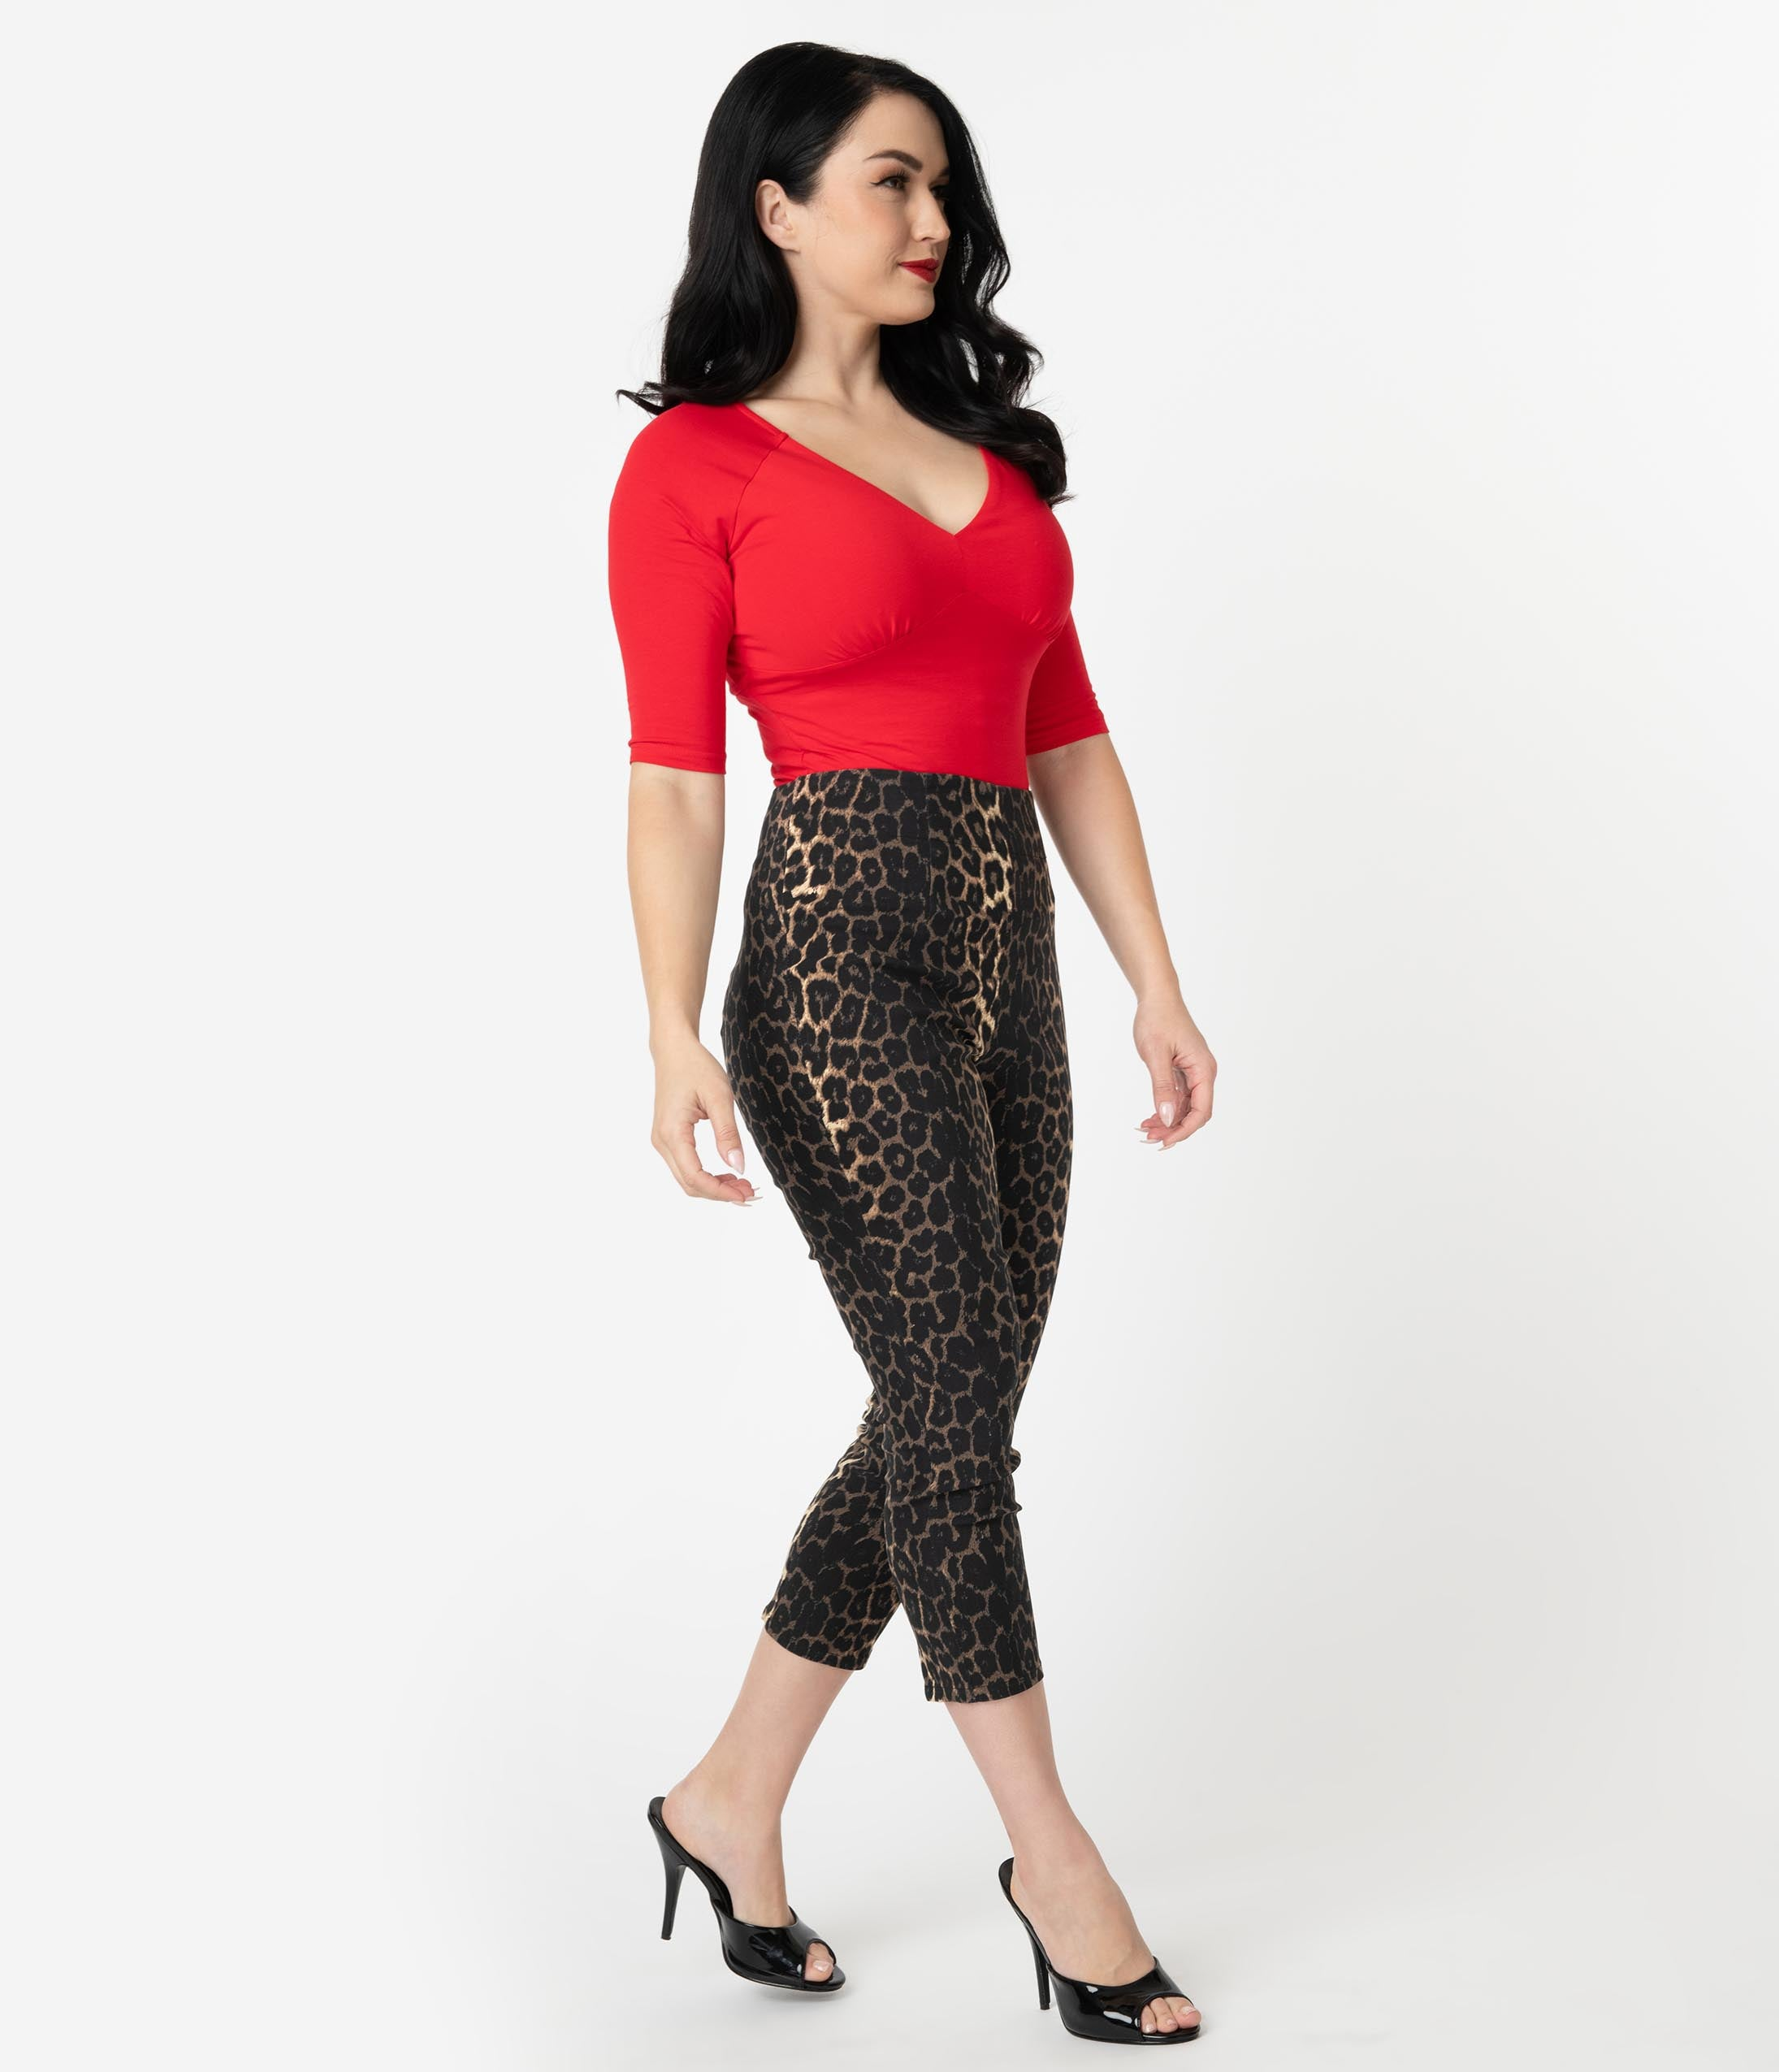 1950s Costumes- Poodle Skirts, Grease, Monroe, Pin Up, I Love Lucy Hell Bunny 1950S Style Leopard Print Panthera Capri Pants $48.00 AT vintagedancer.com